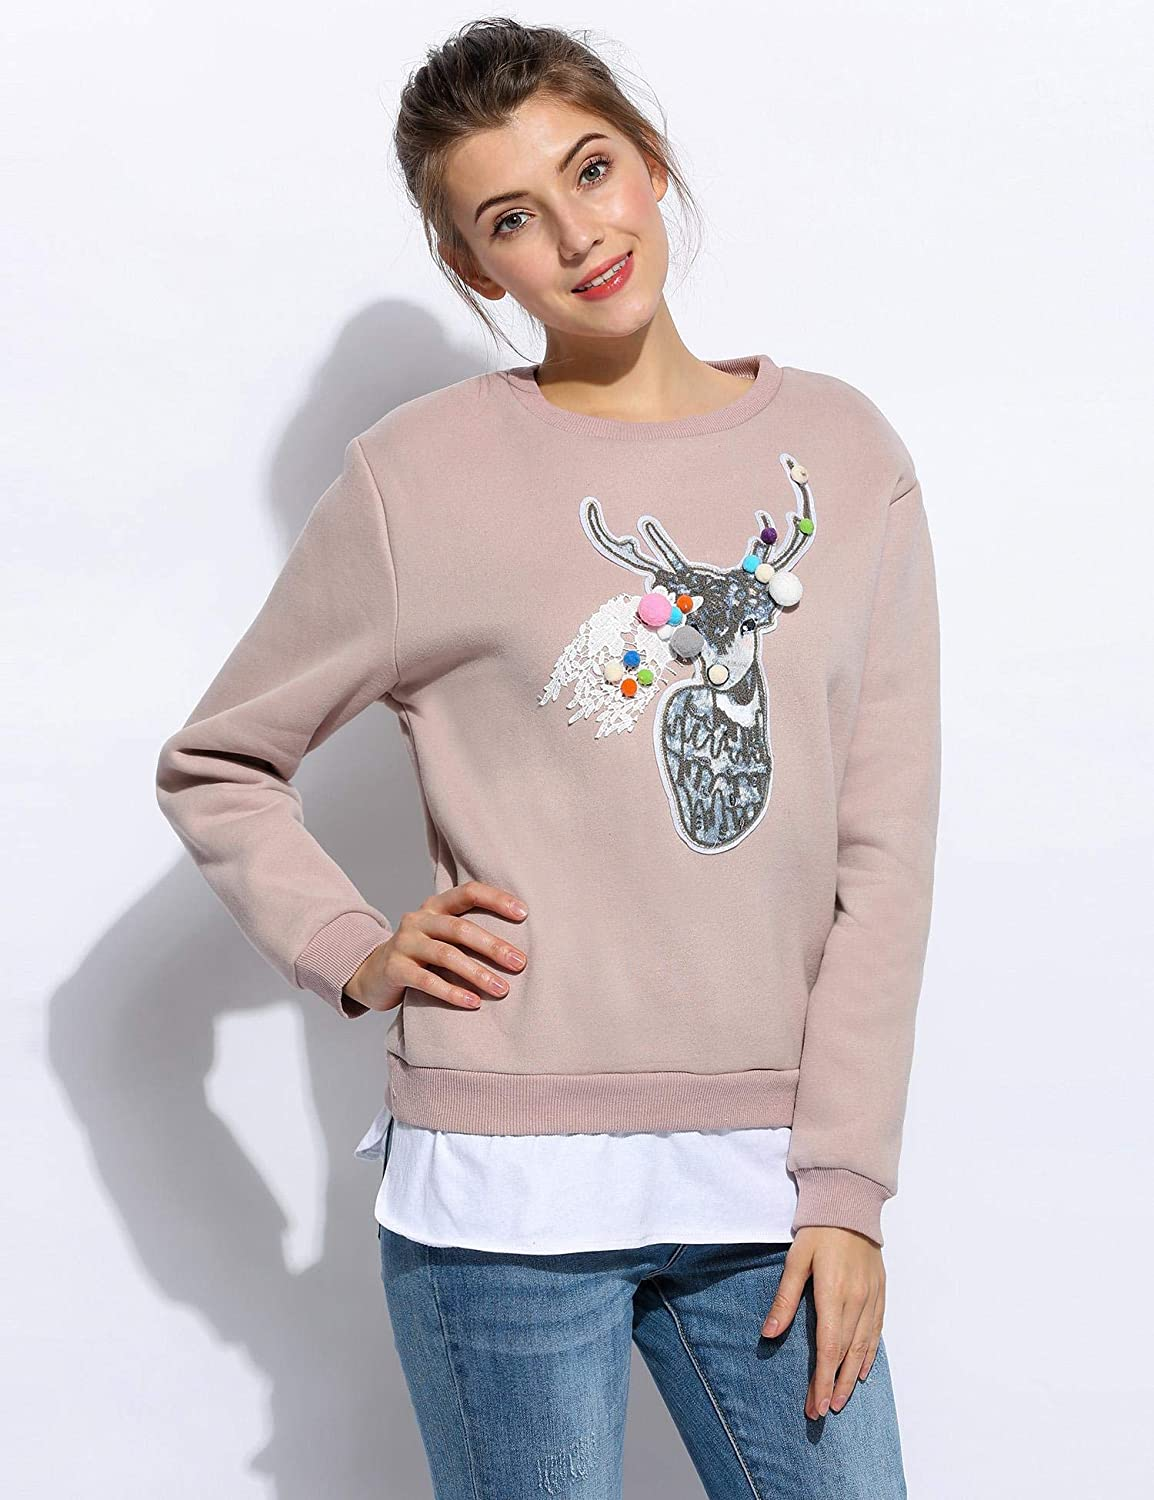 Kikole Women Casual O-Neck Long Sleeve Animal Printing Thicken Pullover Sweatshirt Fashion Hoodies